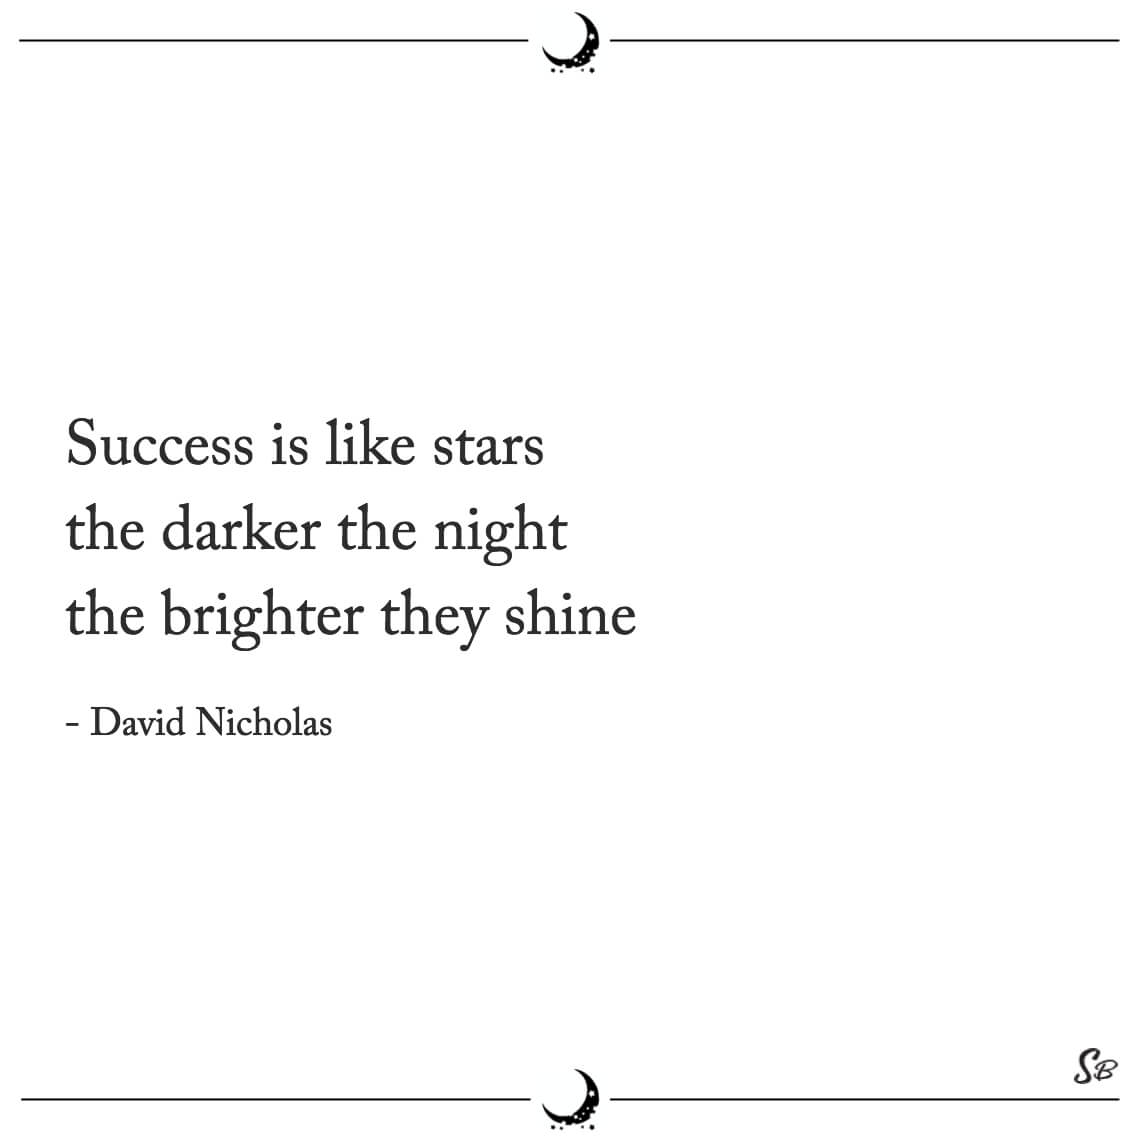 Success is like stars the darker the night the brighter they shine david nicholas